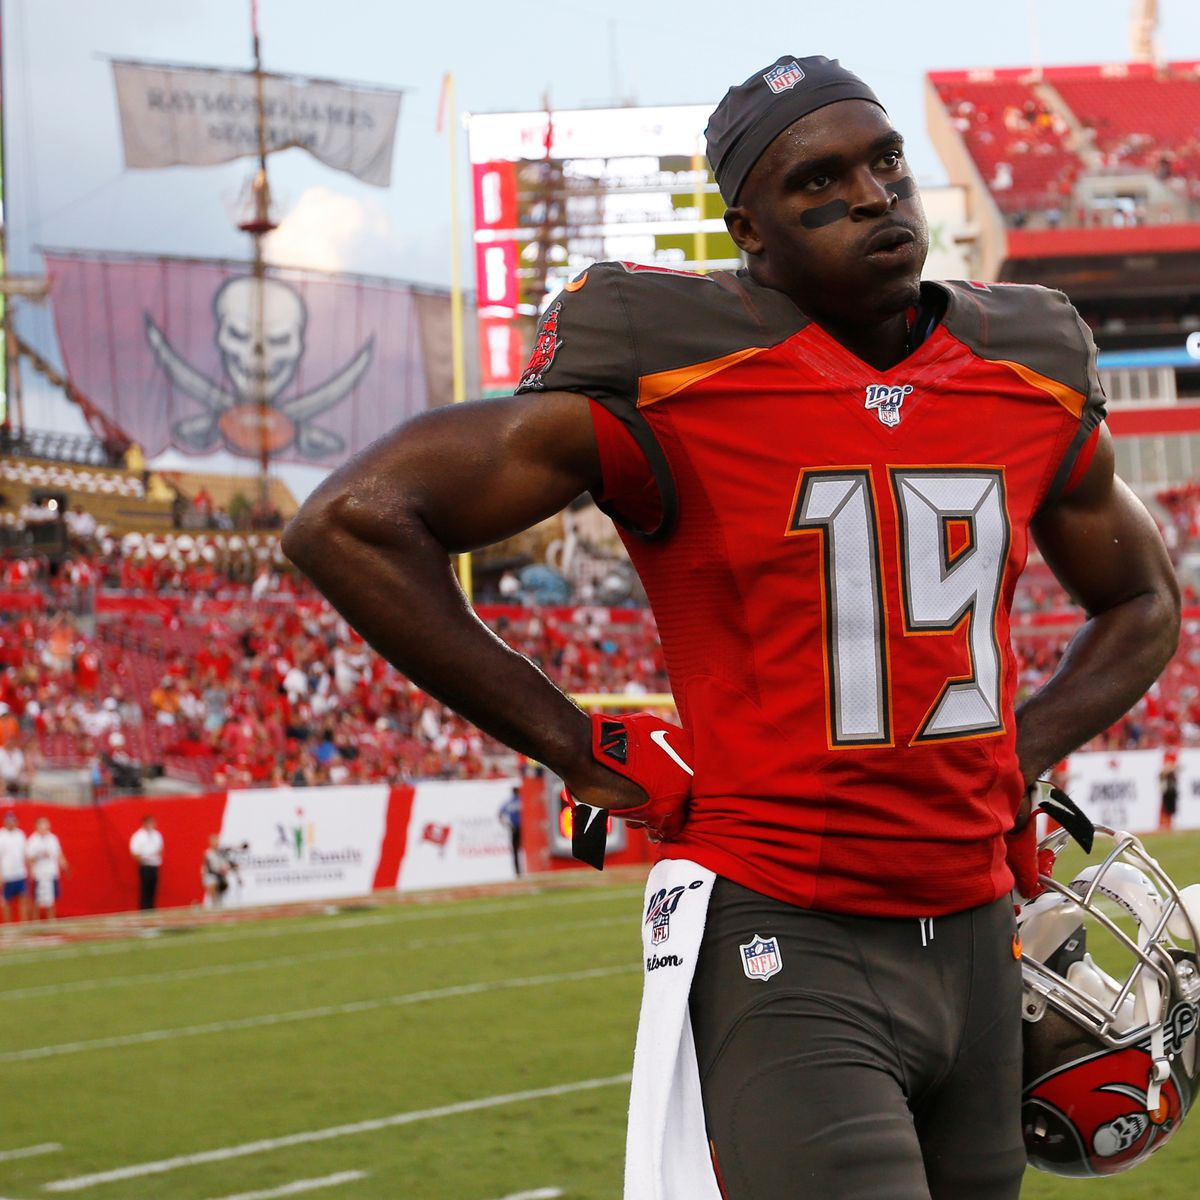 The Bucs' Breshad Perriman signing has morphed into a mess